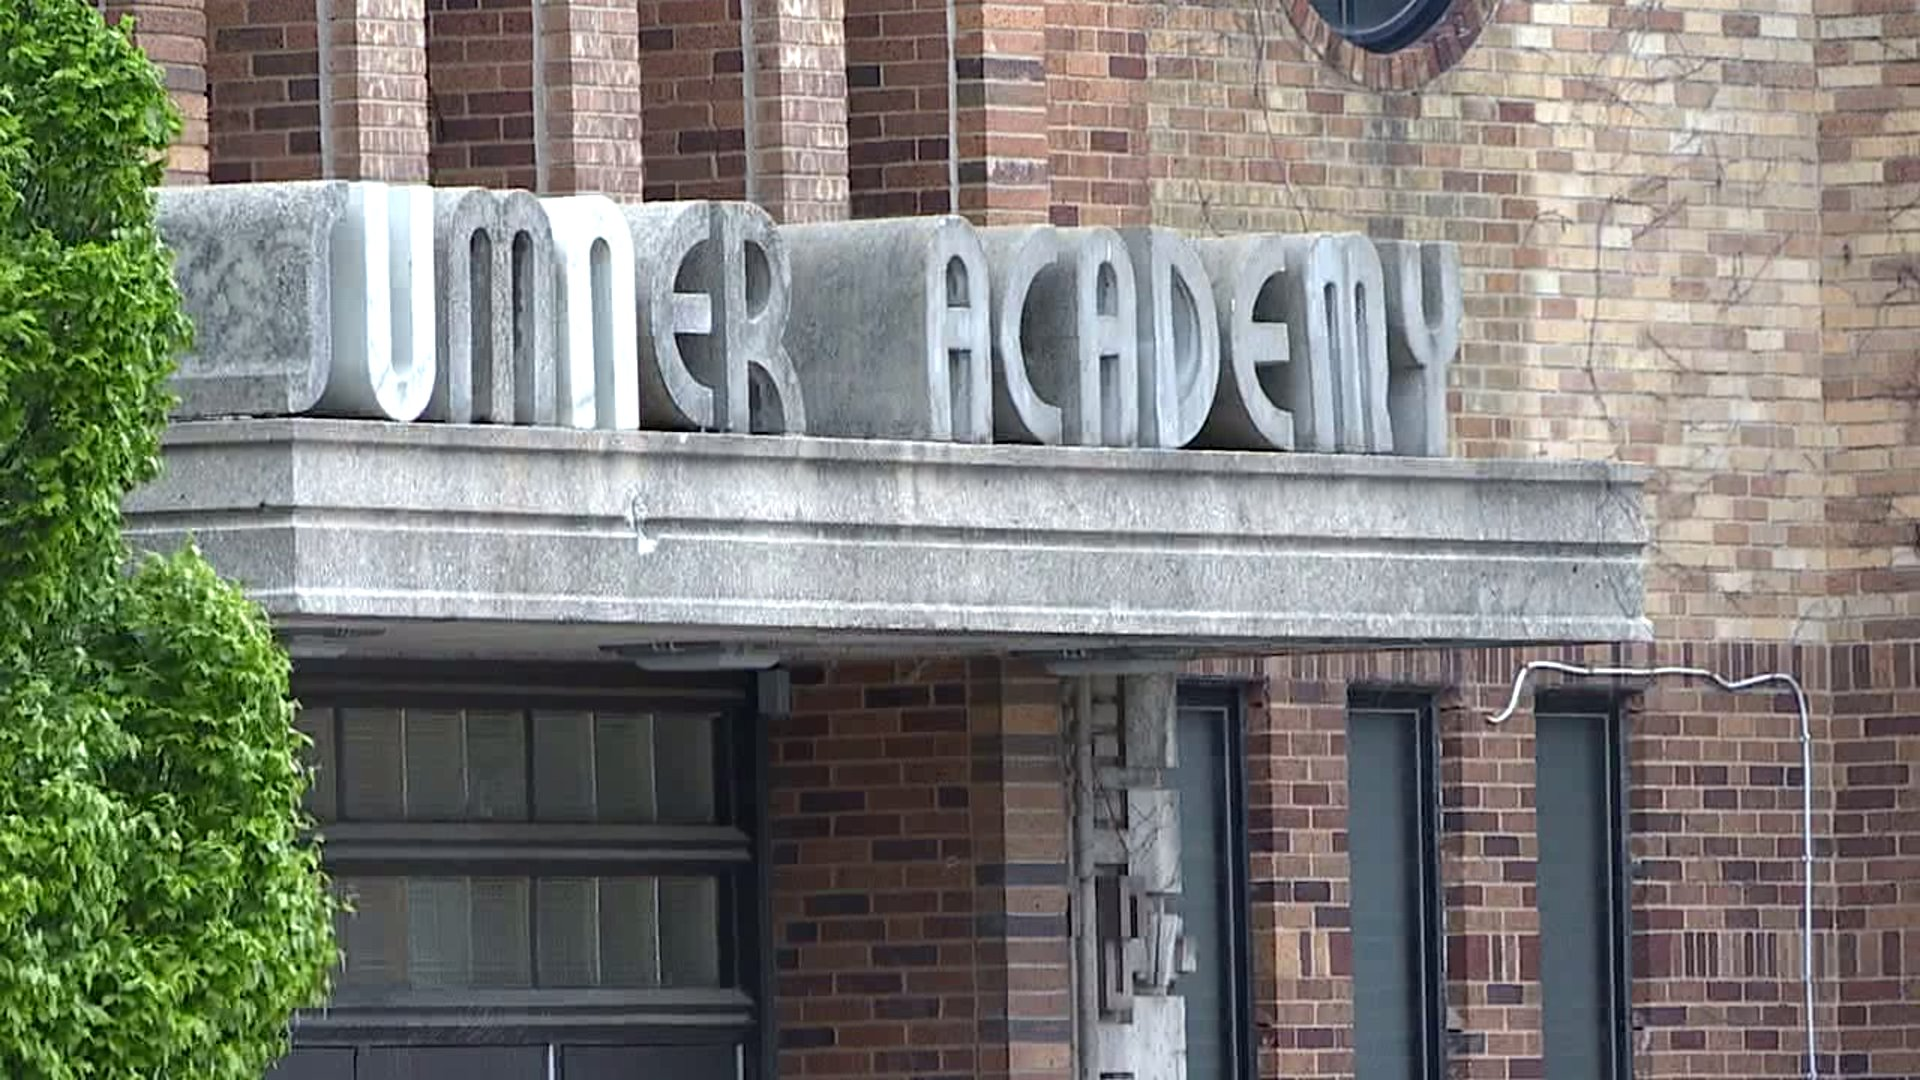 Picture of Sumner Academy sign